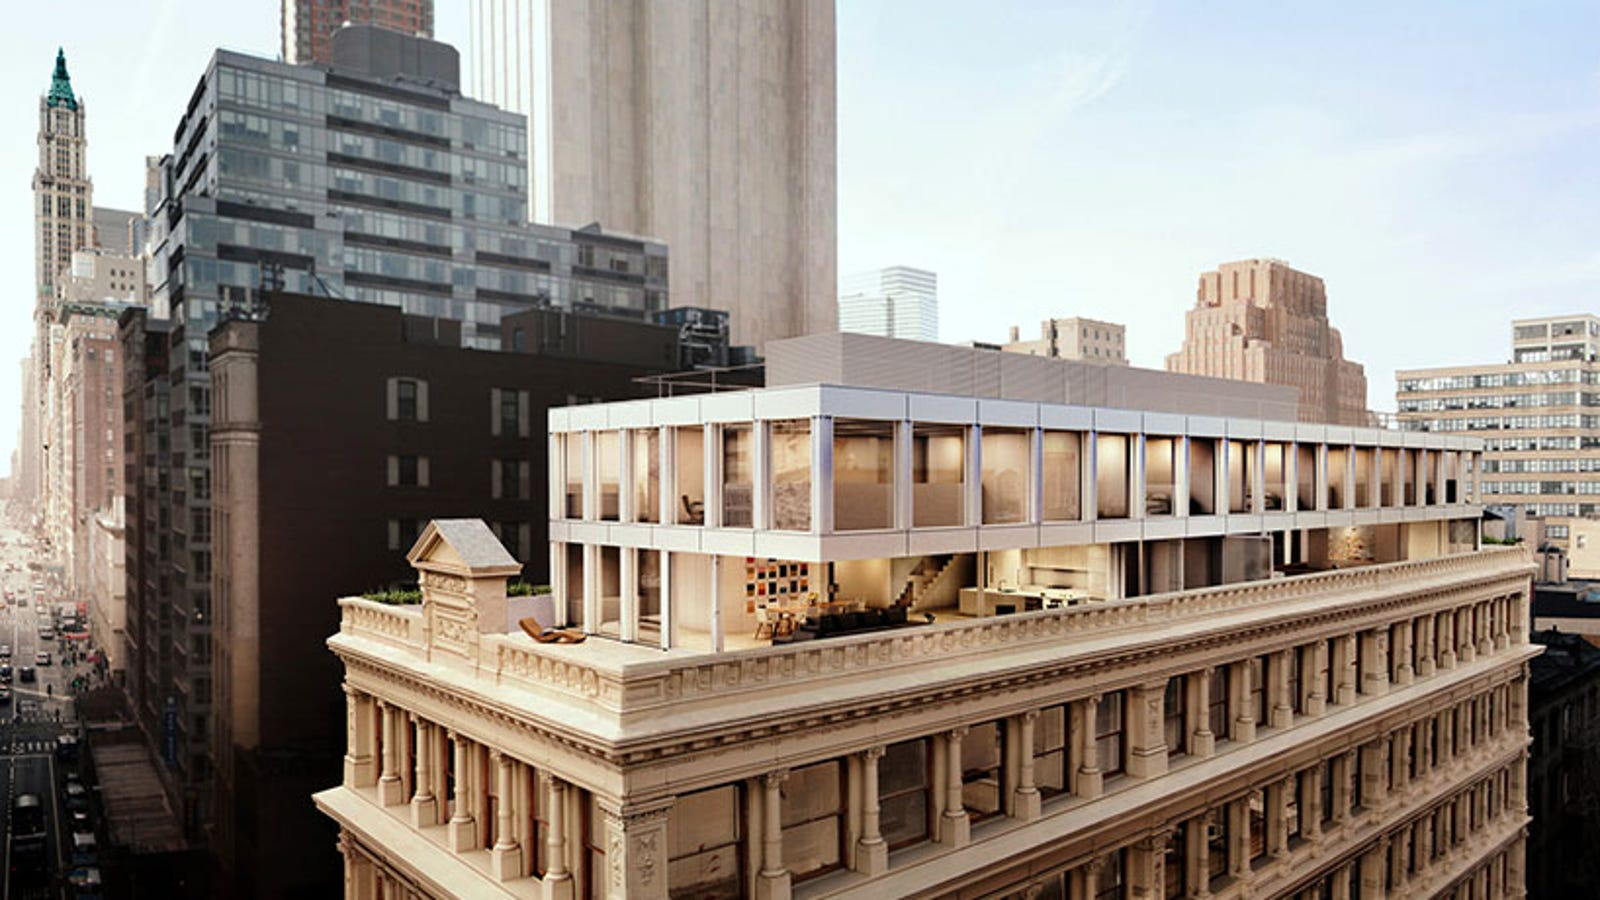 Check Out The Condos Being Built On The Roof Of A Historic